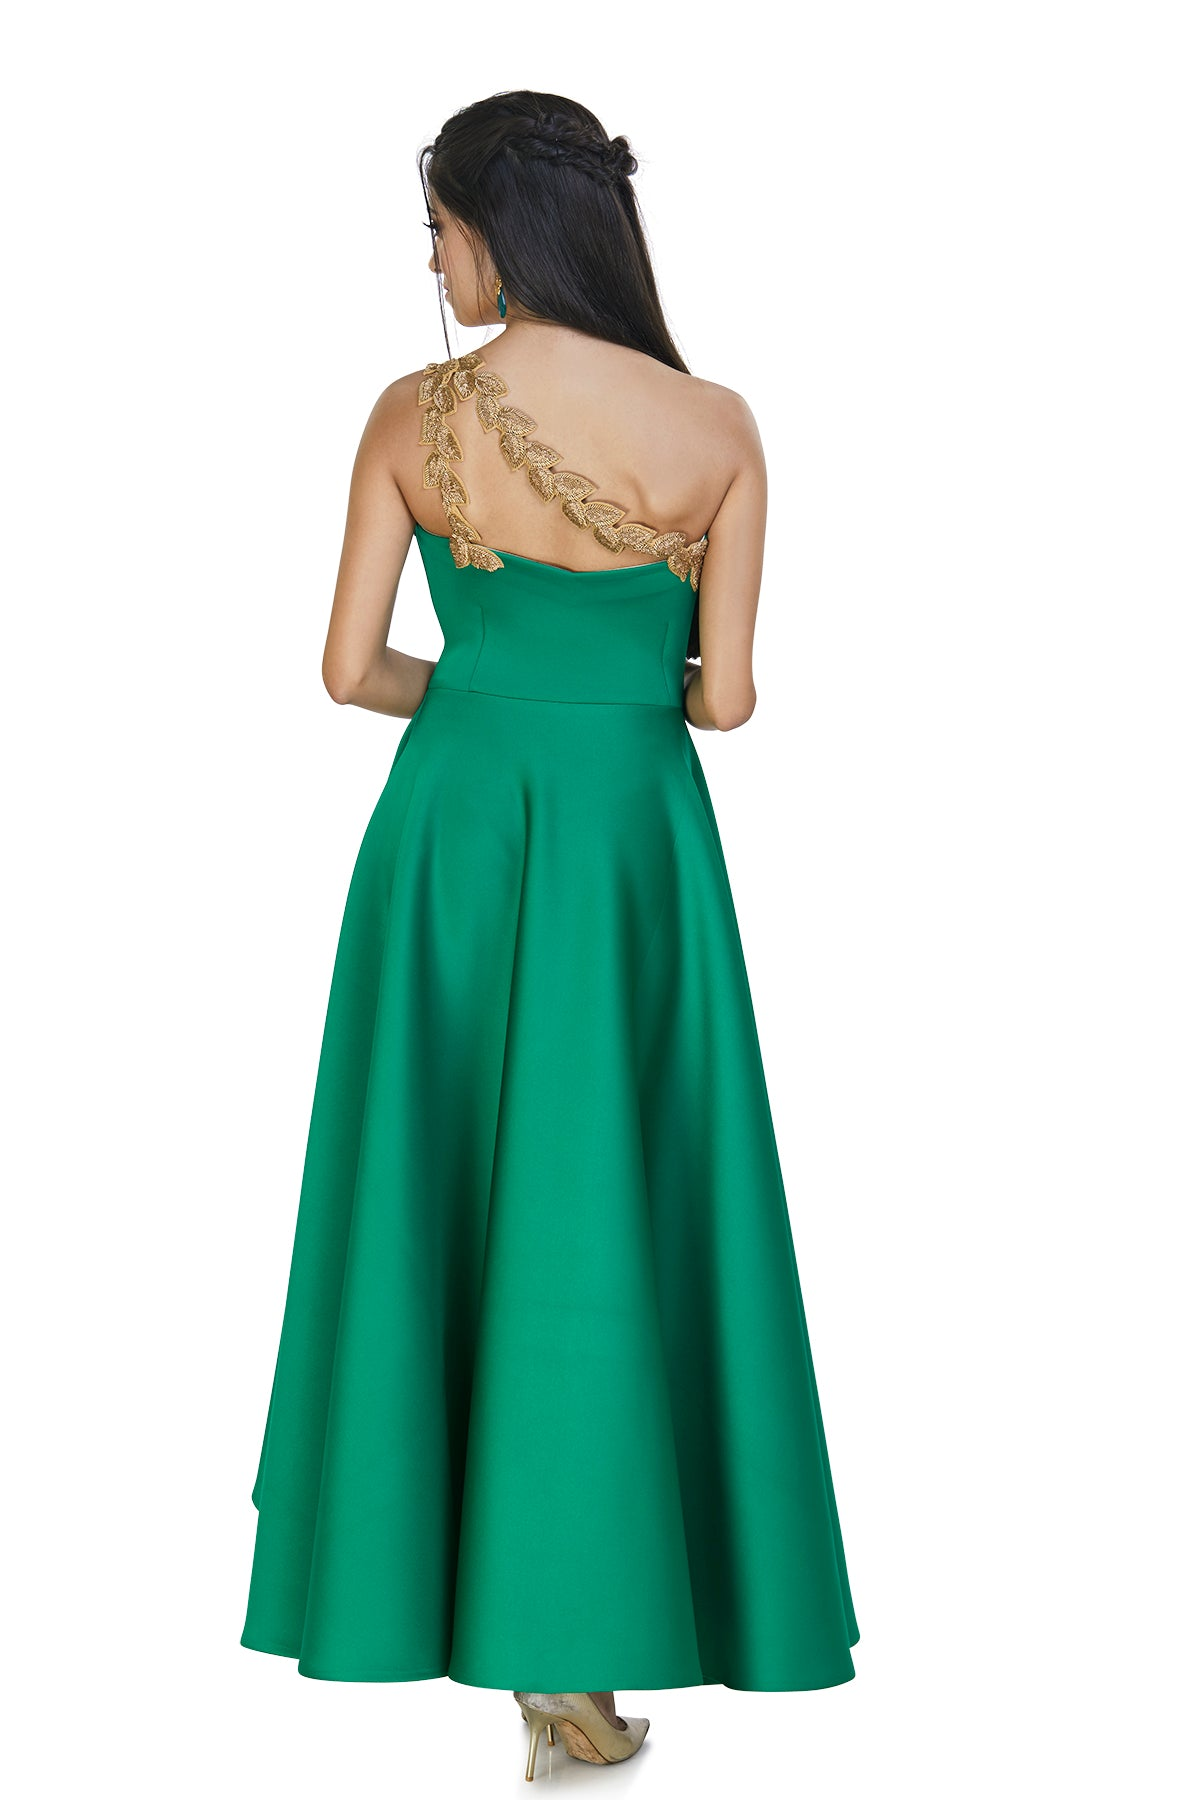 green one shouldered gown